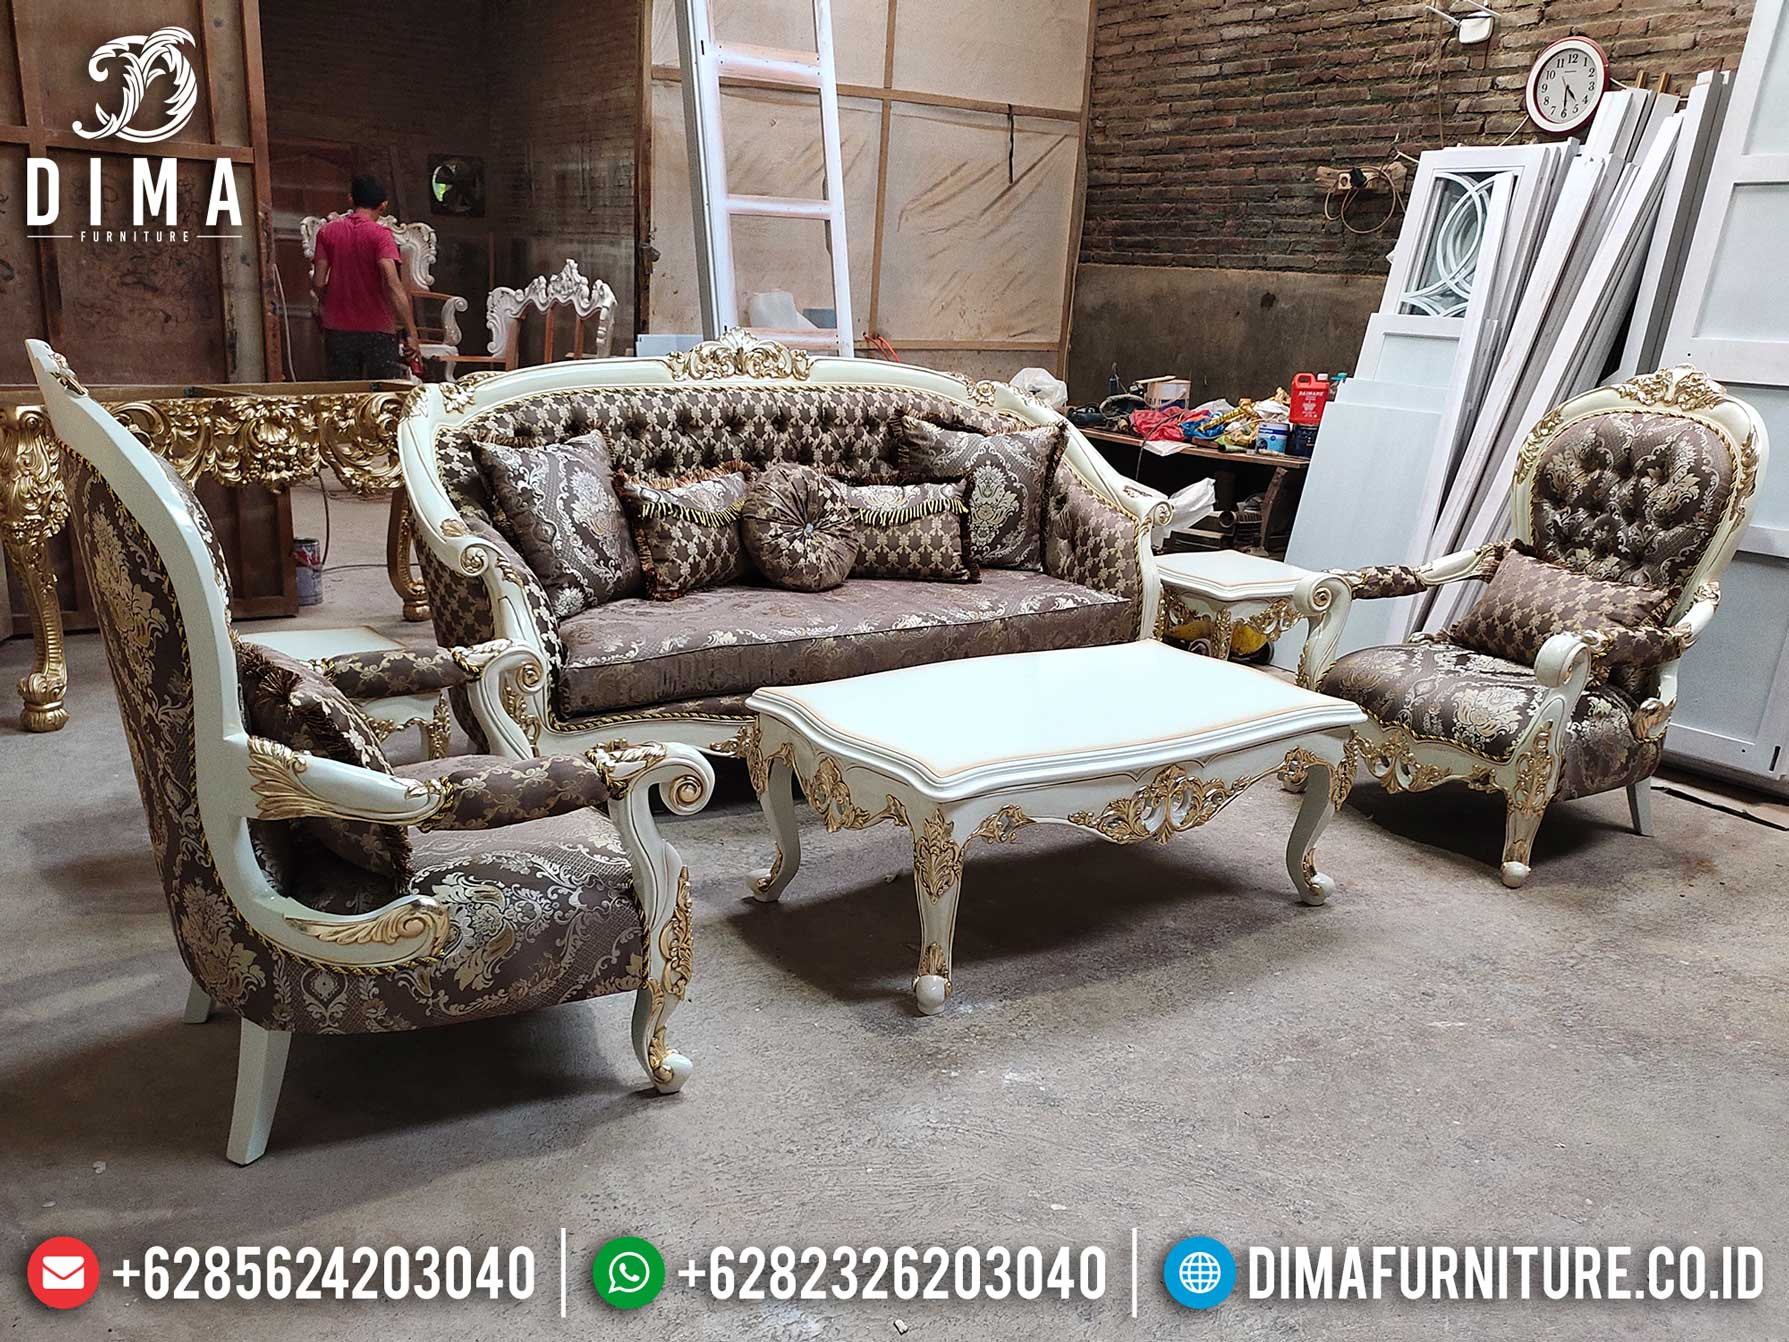 High Quality Sofa Tamu Mewah Luxury Carving Best Fabric Upholstery TTJ-1277